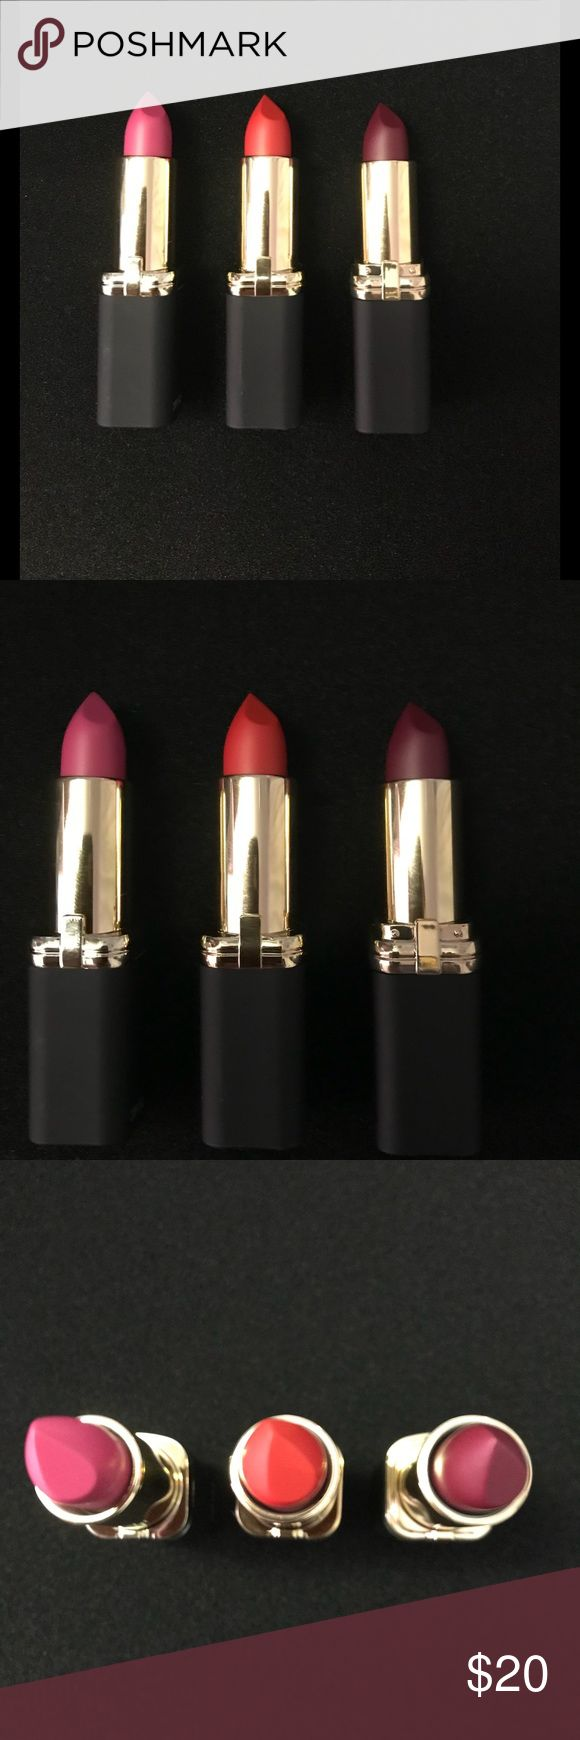 Set of 3 L'Oreal matte lipsticks Set of 3 L'Oreal matte lipsticks  Jennifer's pink (705) limited edition for J Lo deep plum Matte Mandate (712) deep magenta Matte-ly in Love (102) classic red  Brand new Never used, swatched or opened other than for photos l'oreal Makeup Lipstick